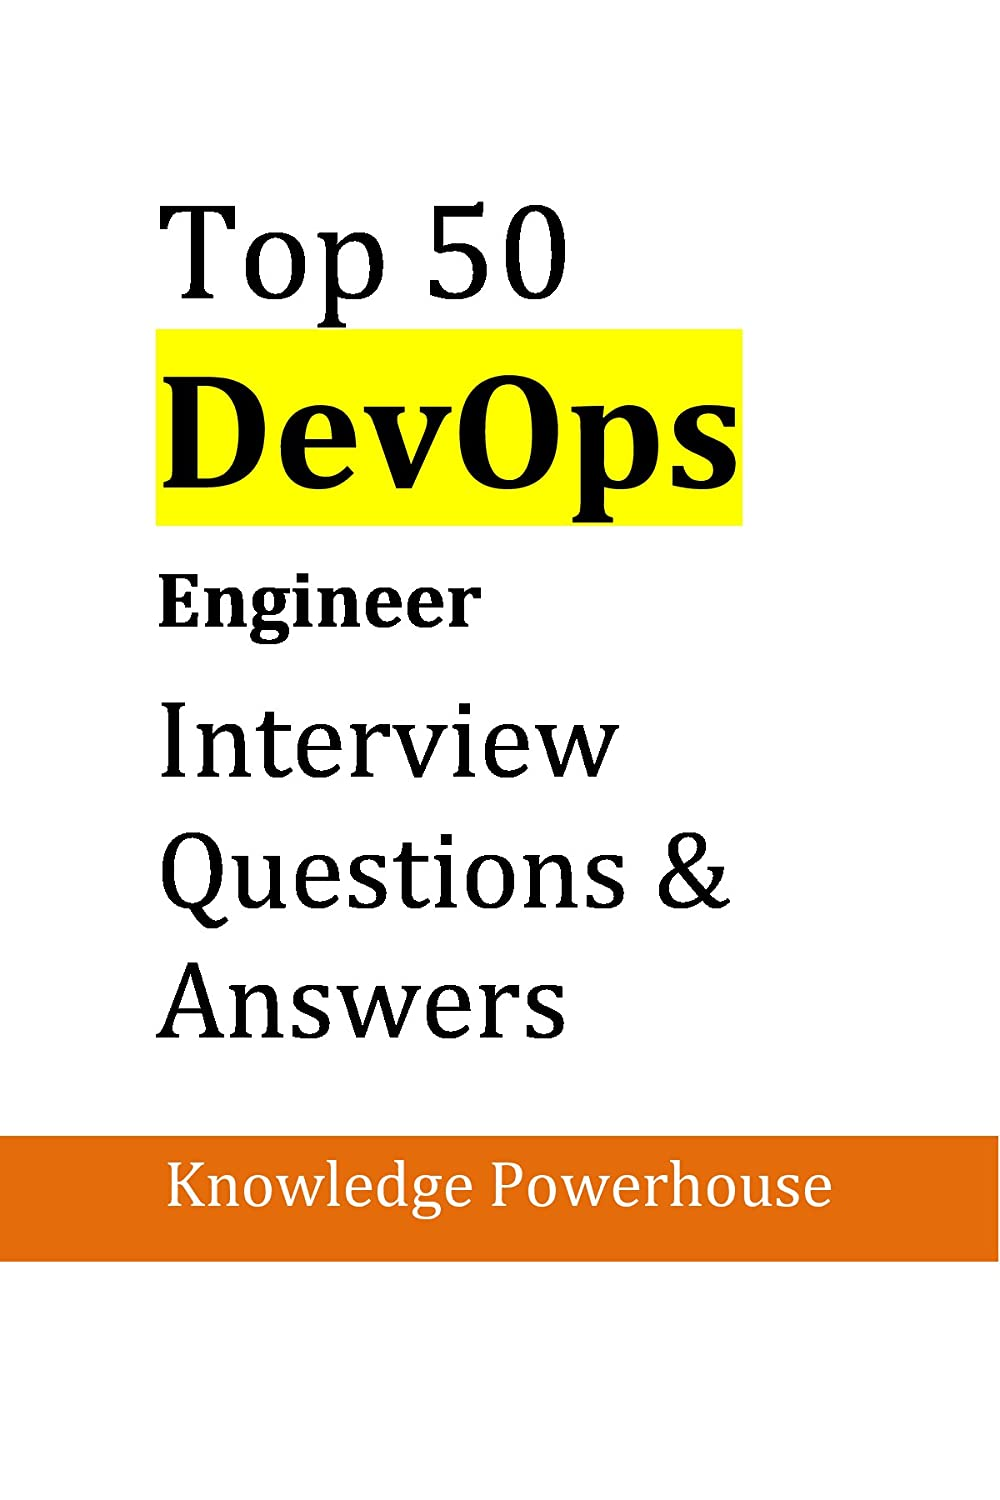 top devops engineer interview questions and answers top 50 devops engineer interview questions and answers see more knowledge powerhouse